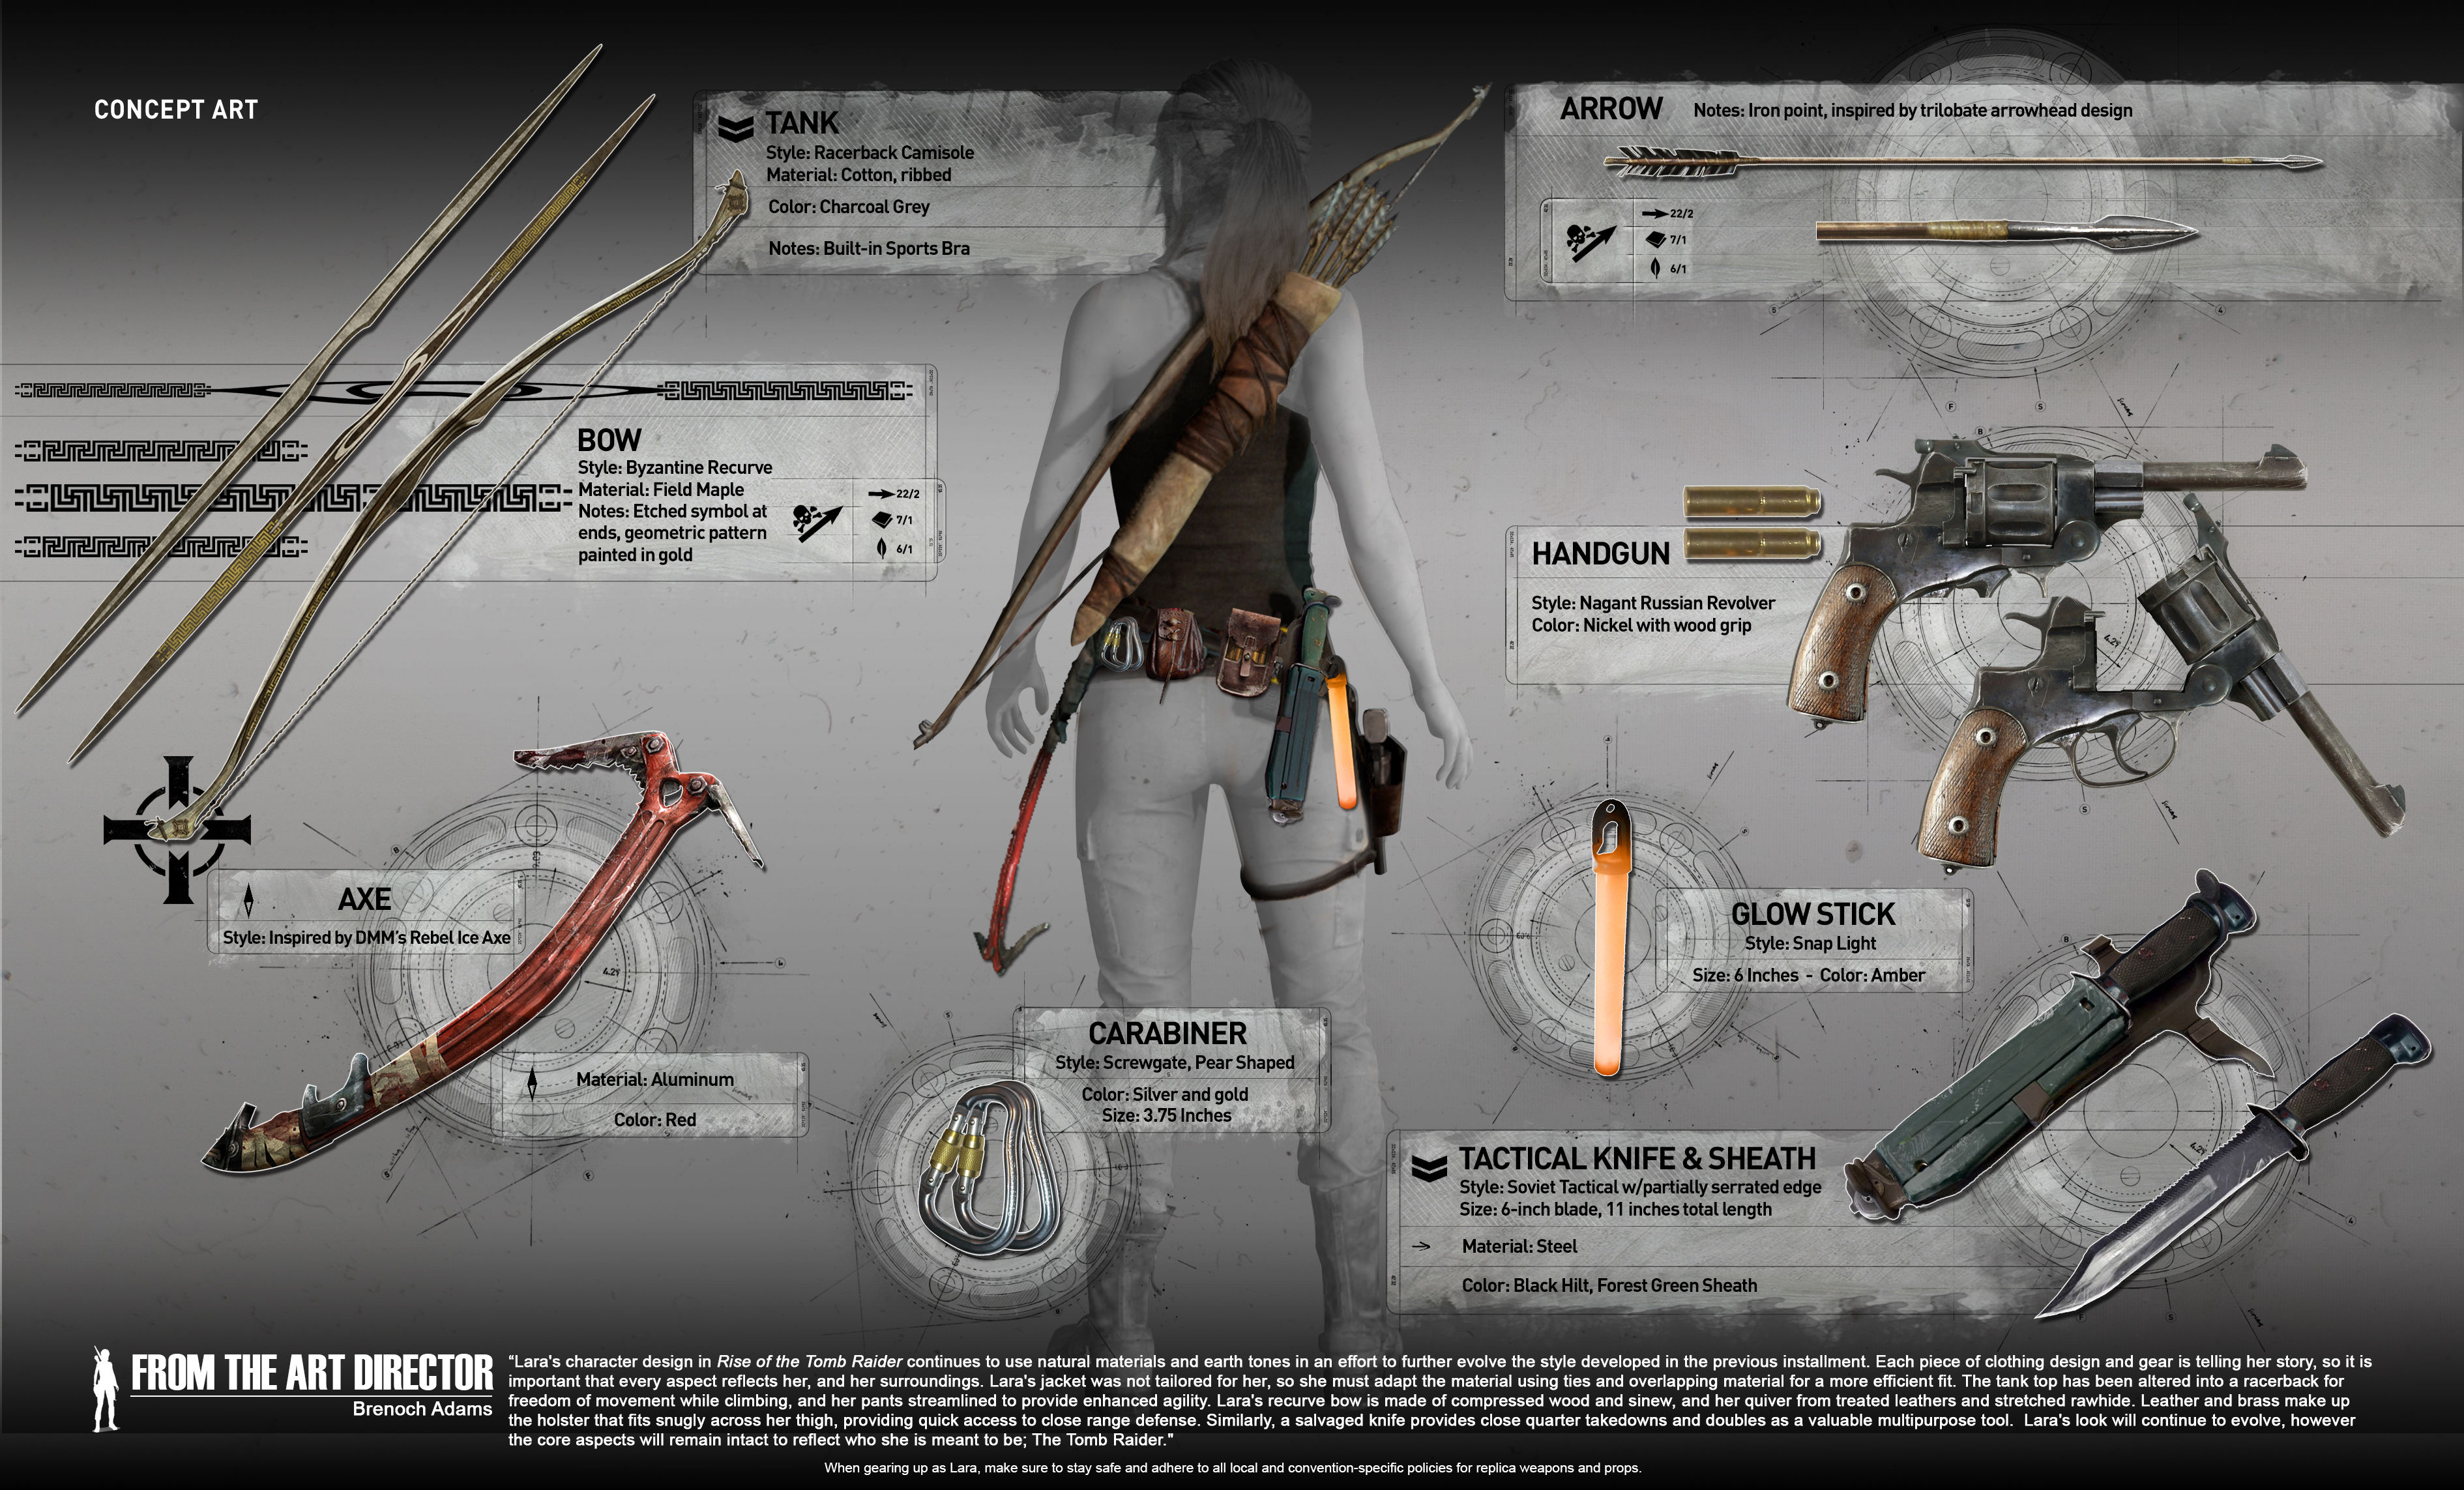 Lara Croft Will Have a Variety of Weapons and Gear